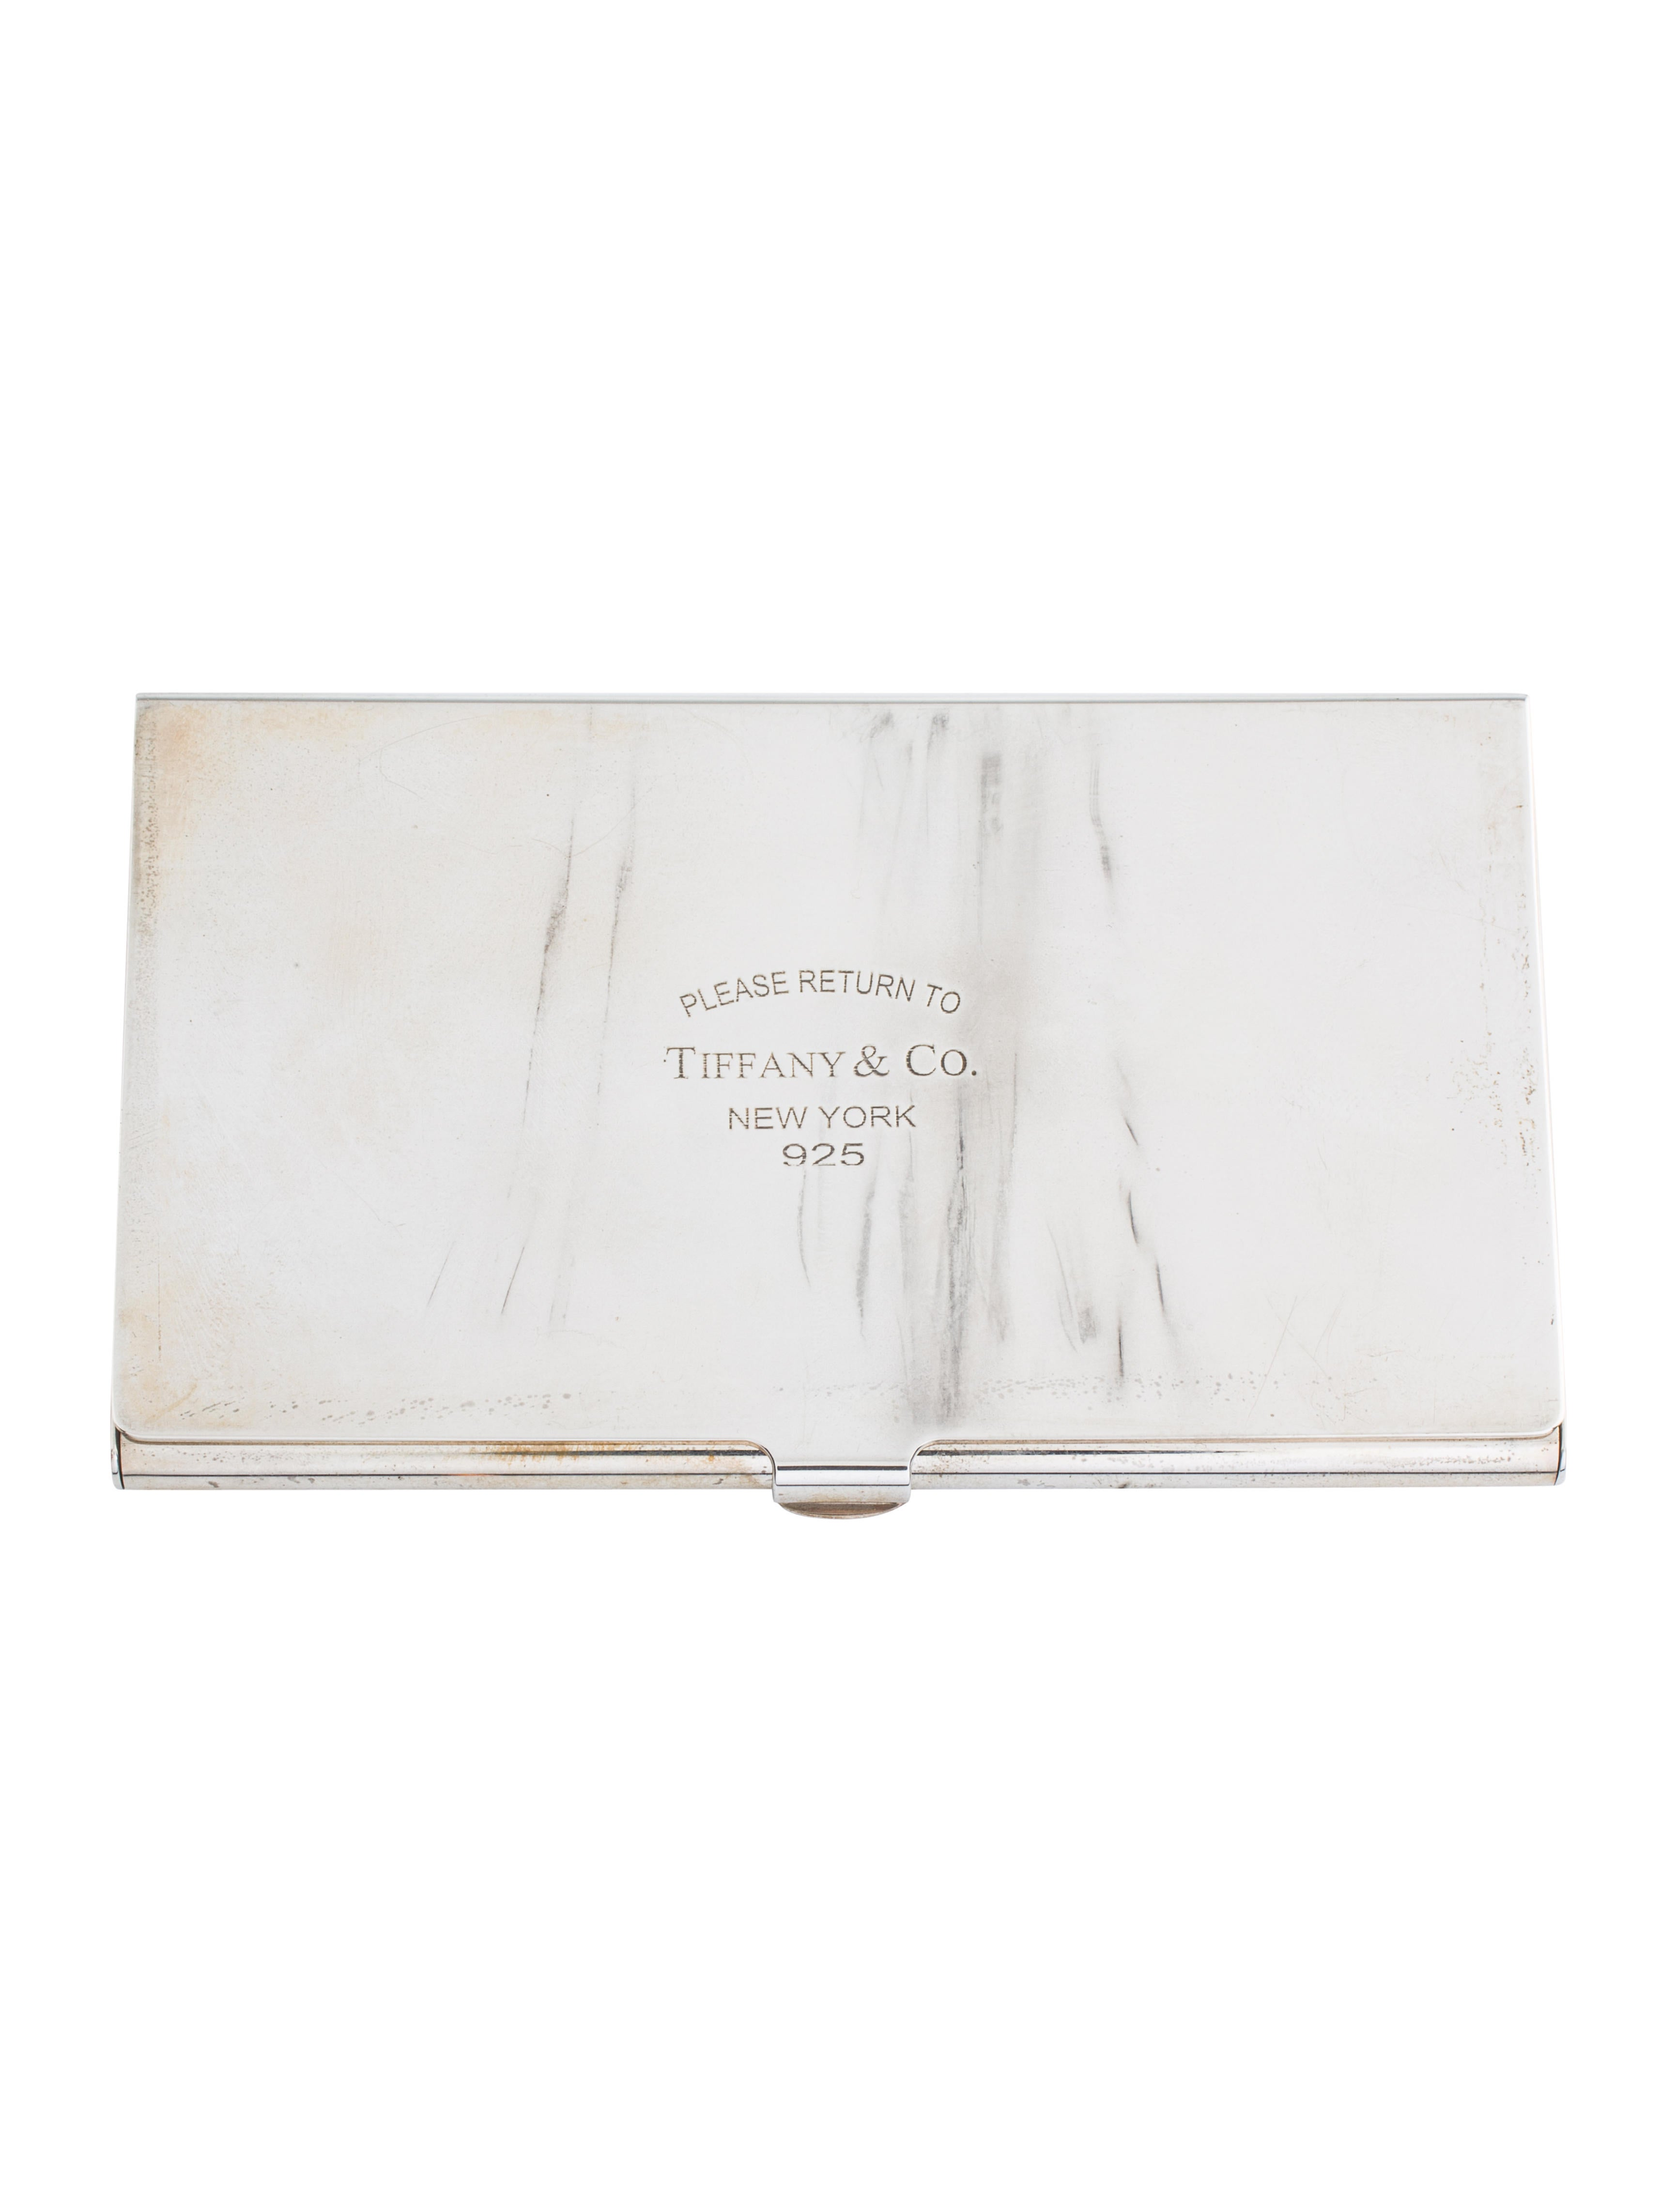 Tiffany co sterling business card holder decor and accessories sterling business card holder colourmoves